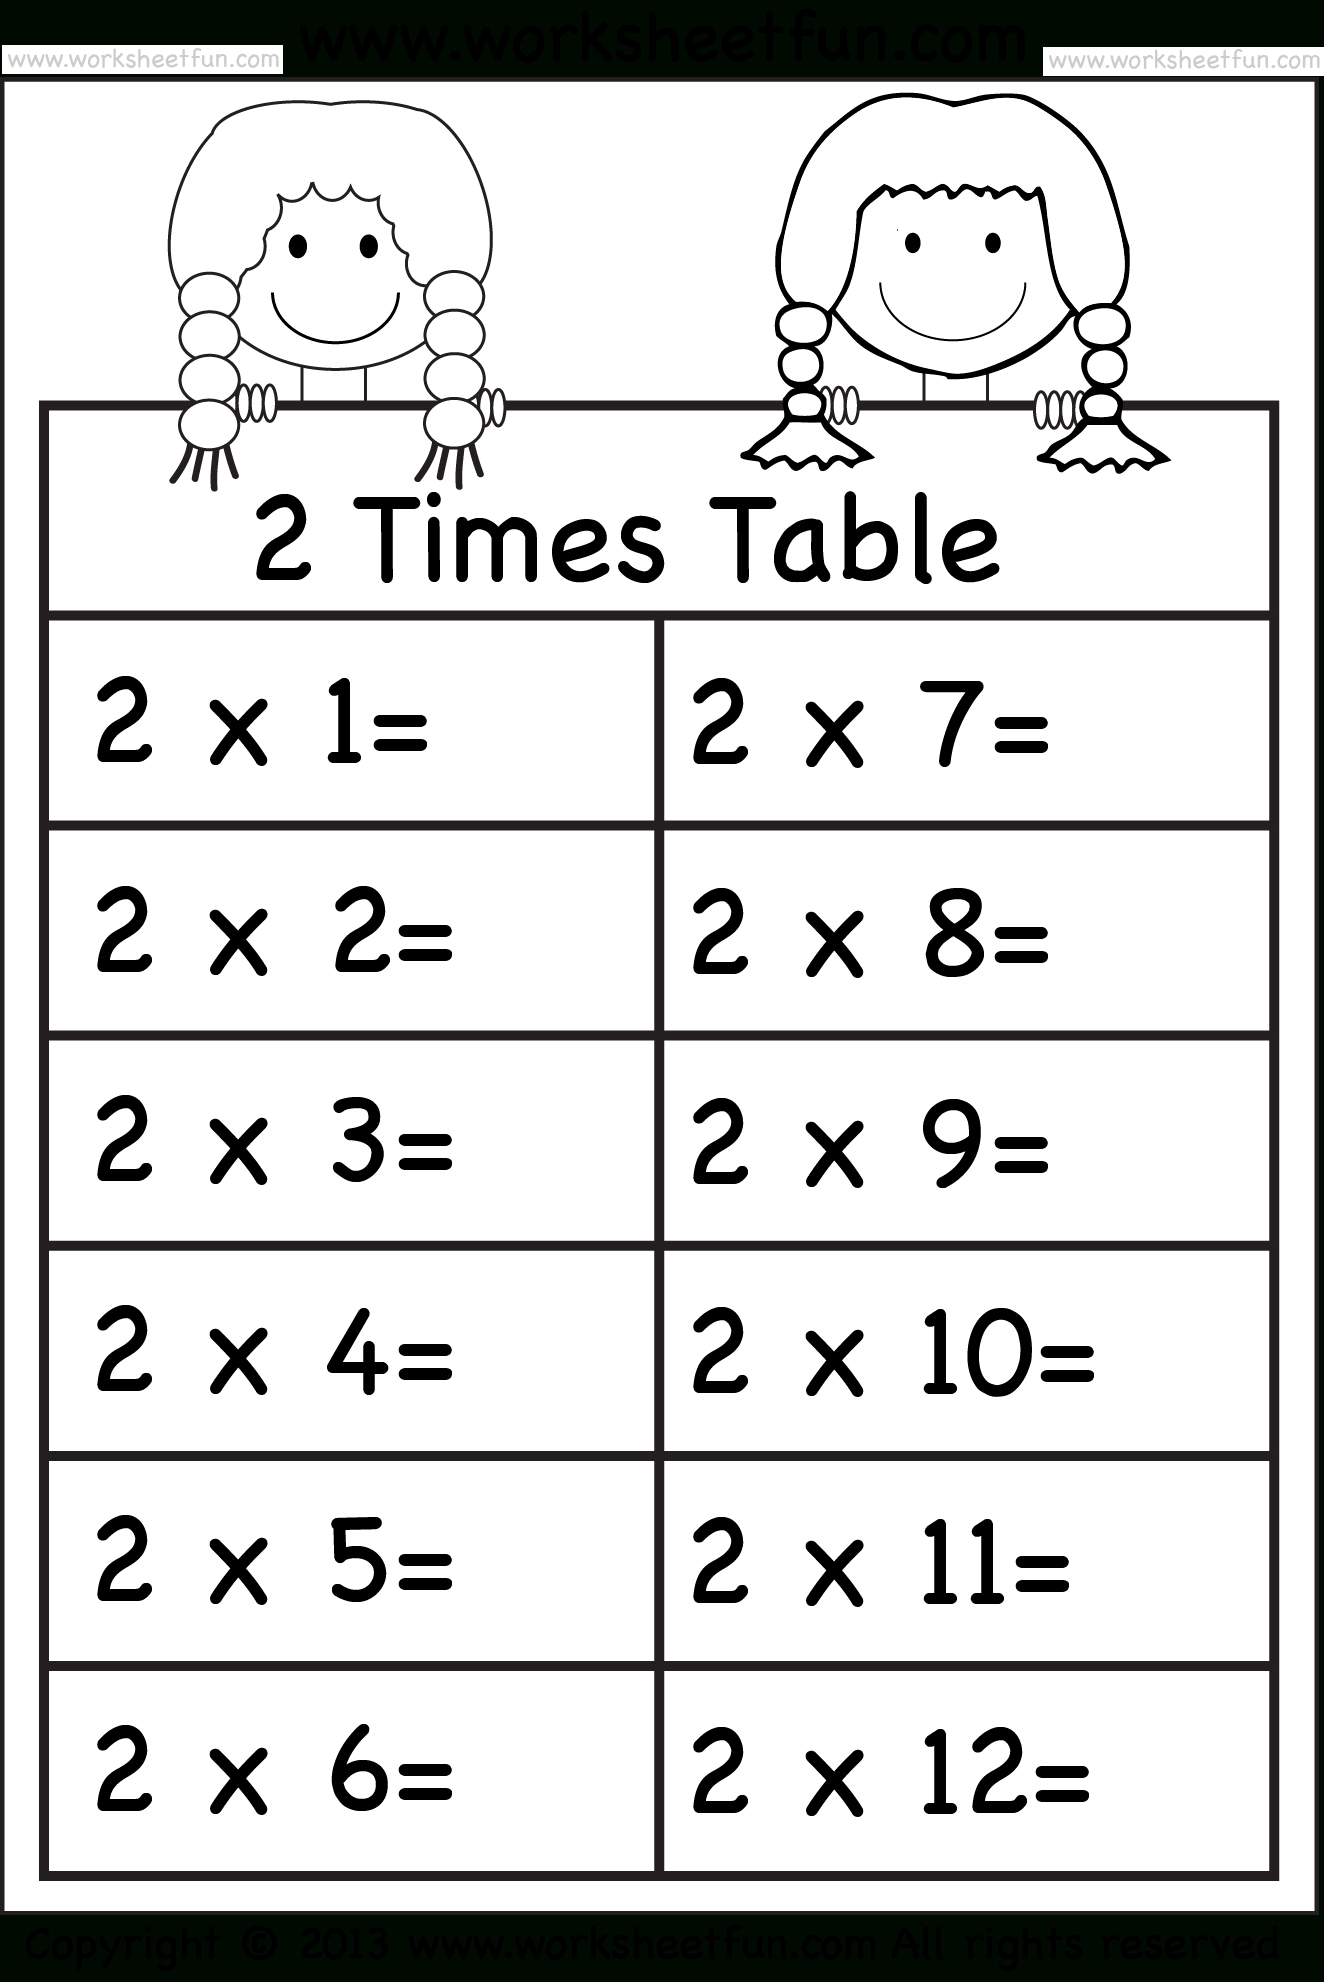 Times Tables Worksheets – 2, 3, 4, 5, 6, 7, 8, 9, 10, 11 And pertaining to Multiplication Worksheets 4 Times Tables